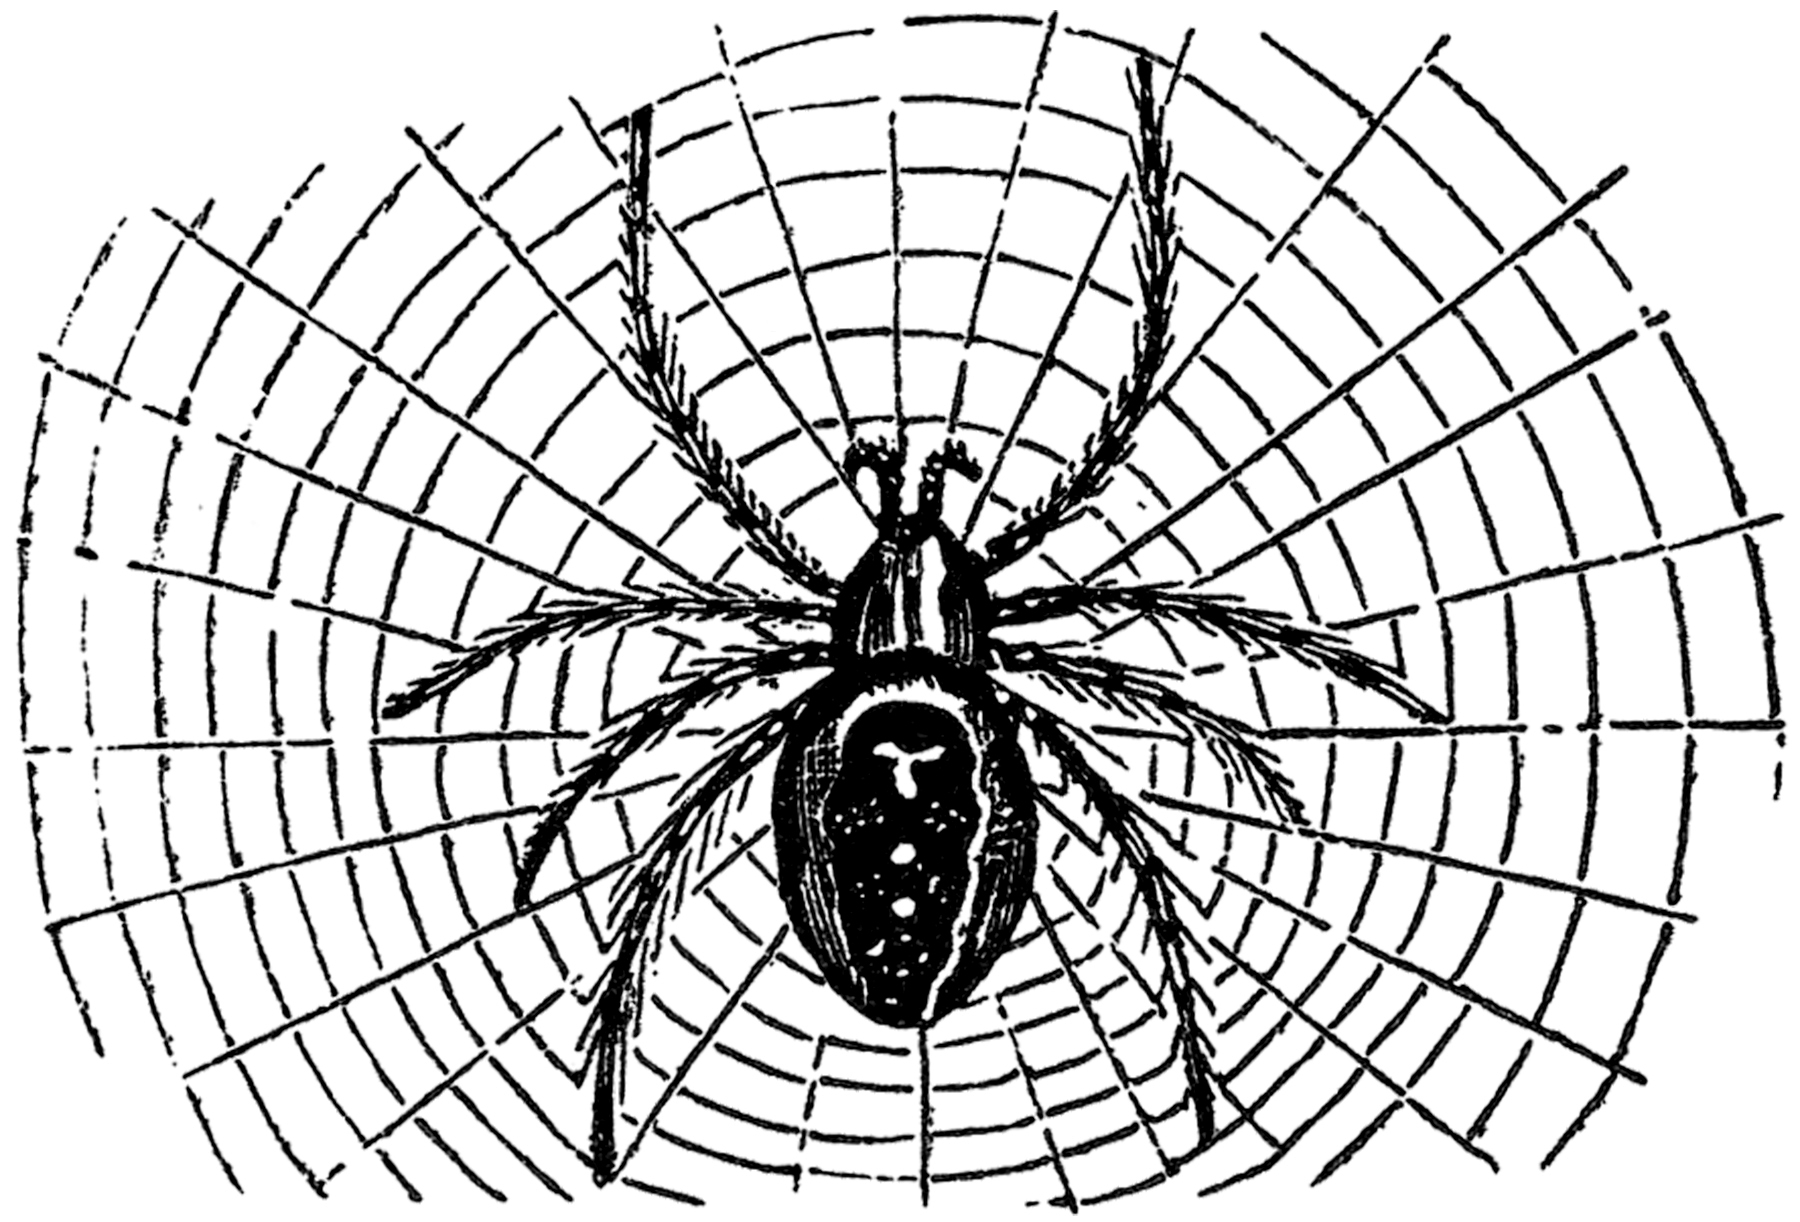 vintage halloween spider image the graphics fairy web clip art png web clip art png